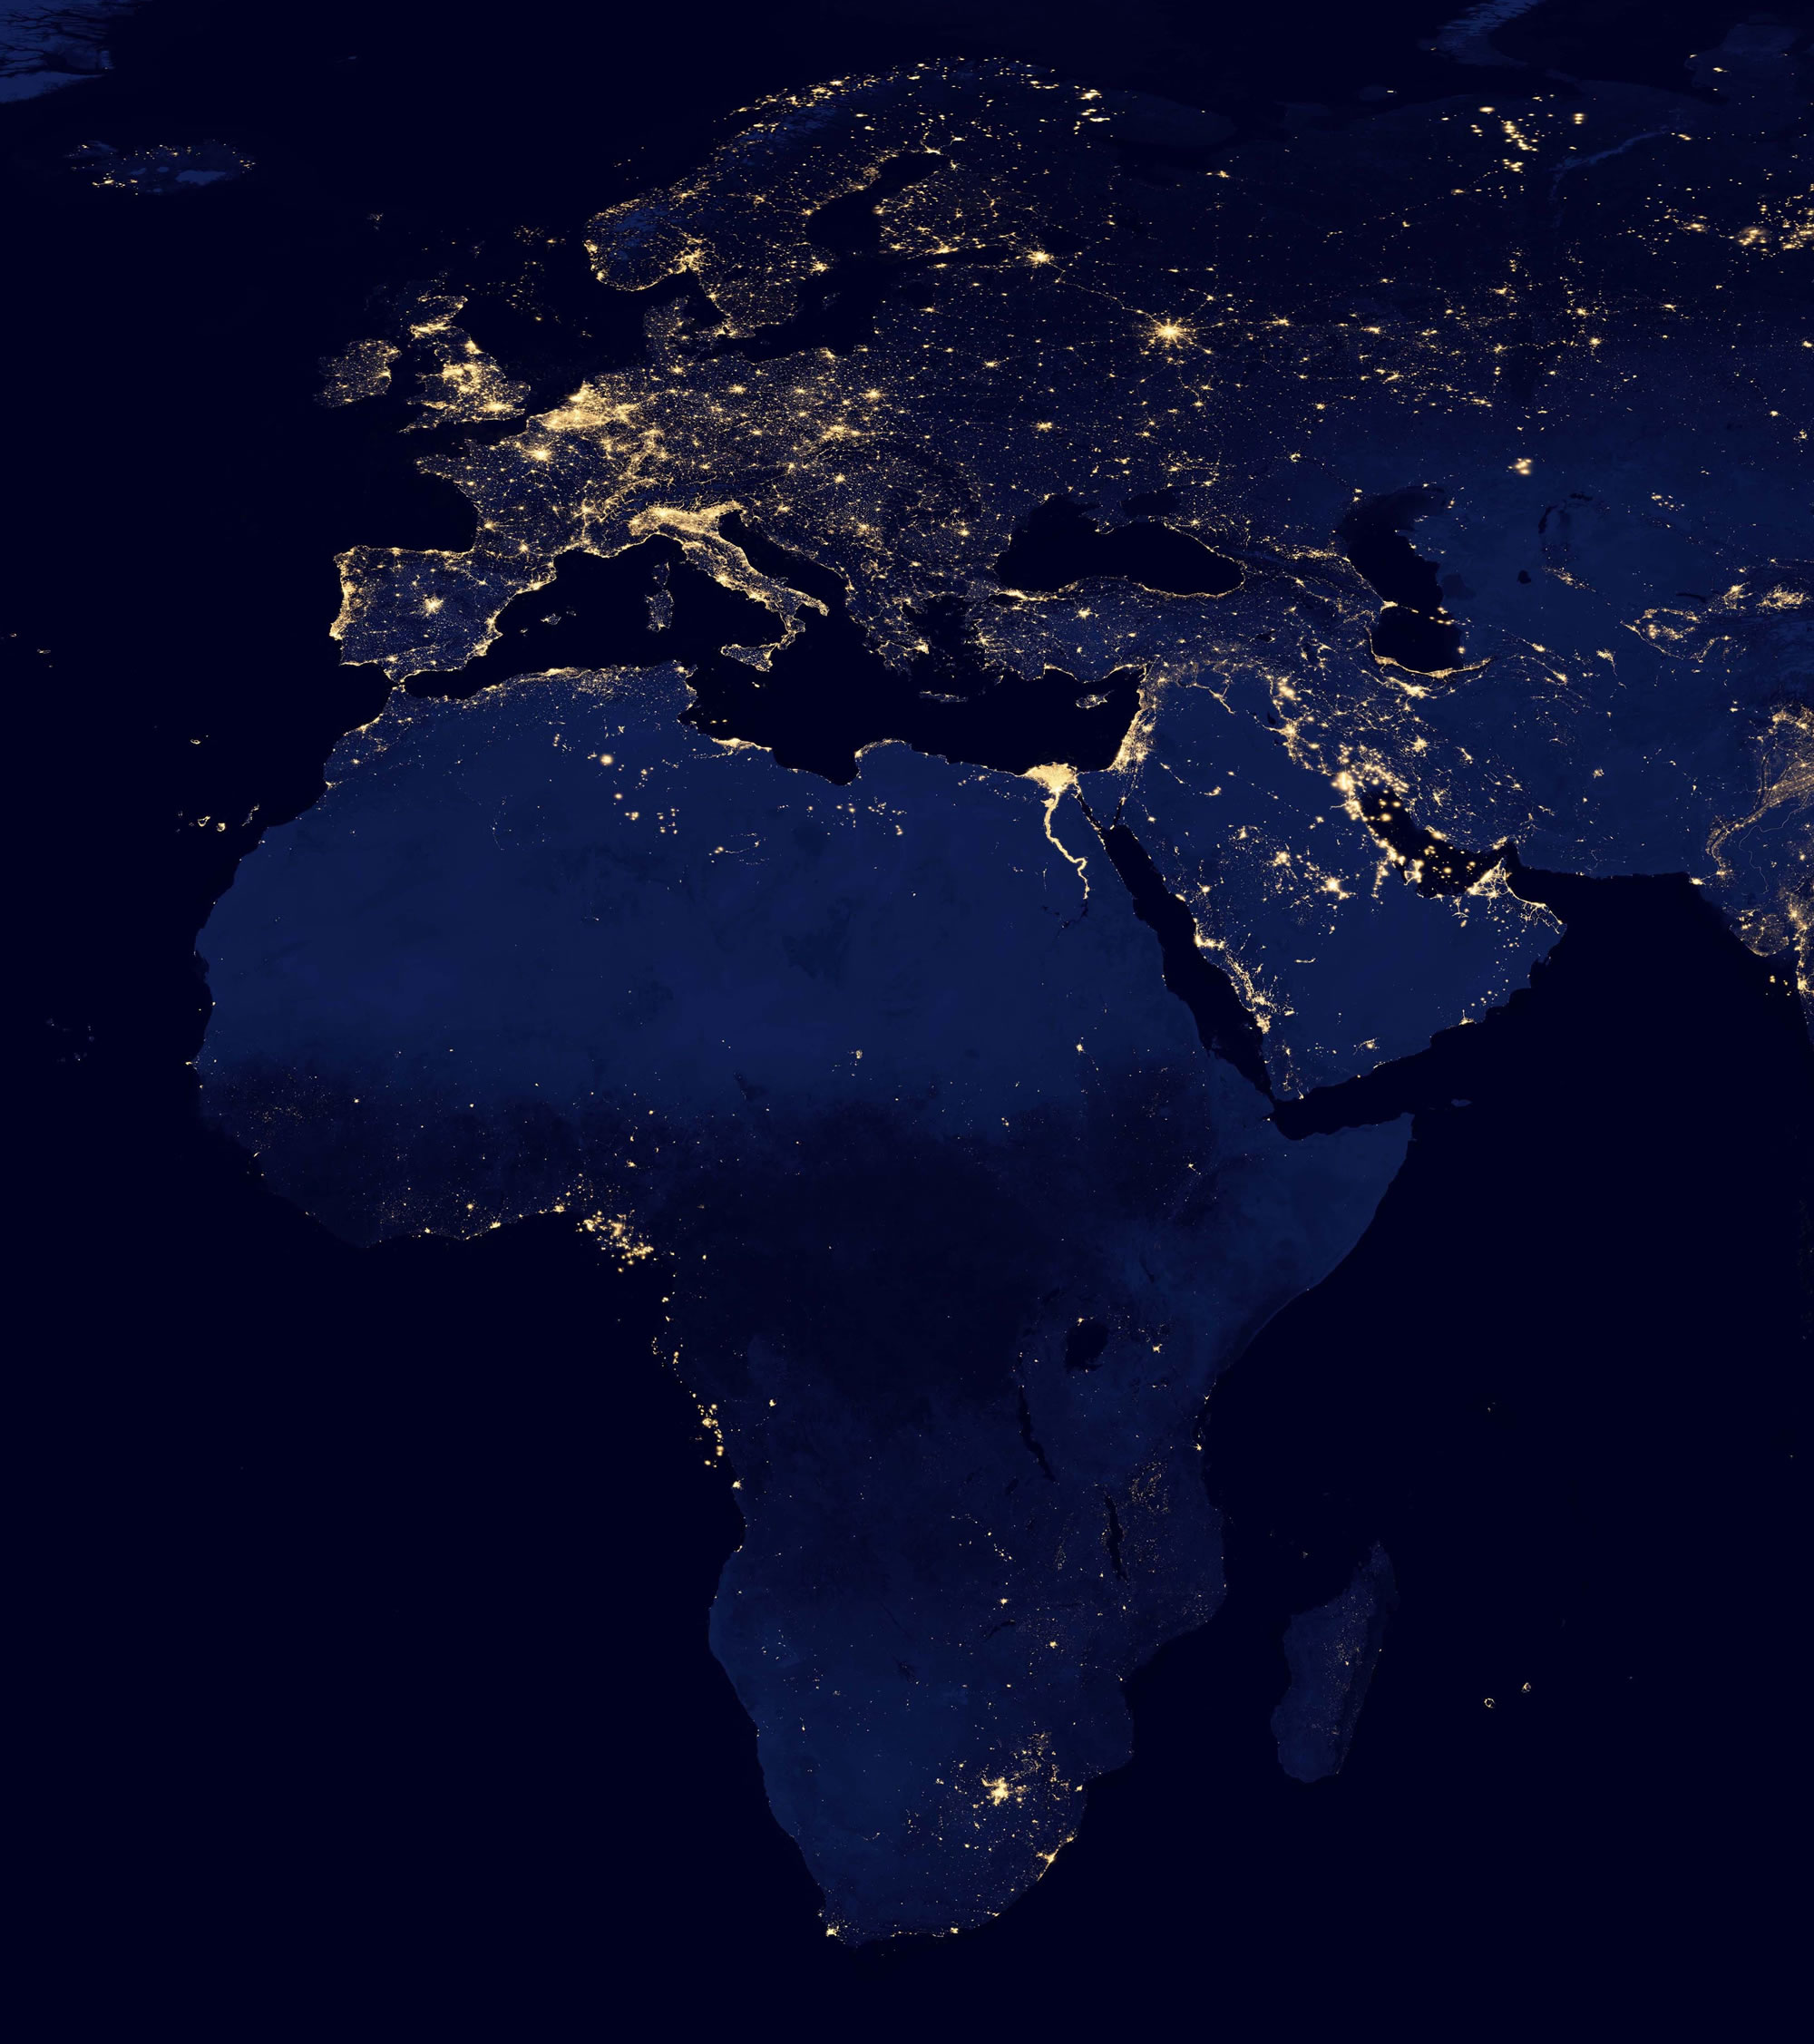 Night satellite photos earth us europe asia world europe and africa at night gumiabroncs Image collections